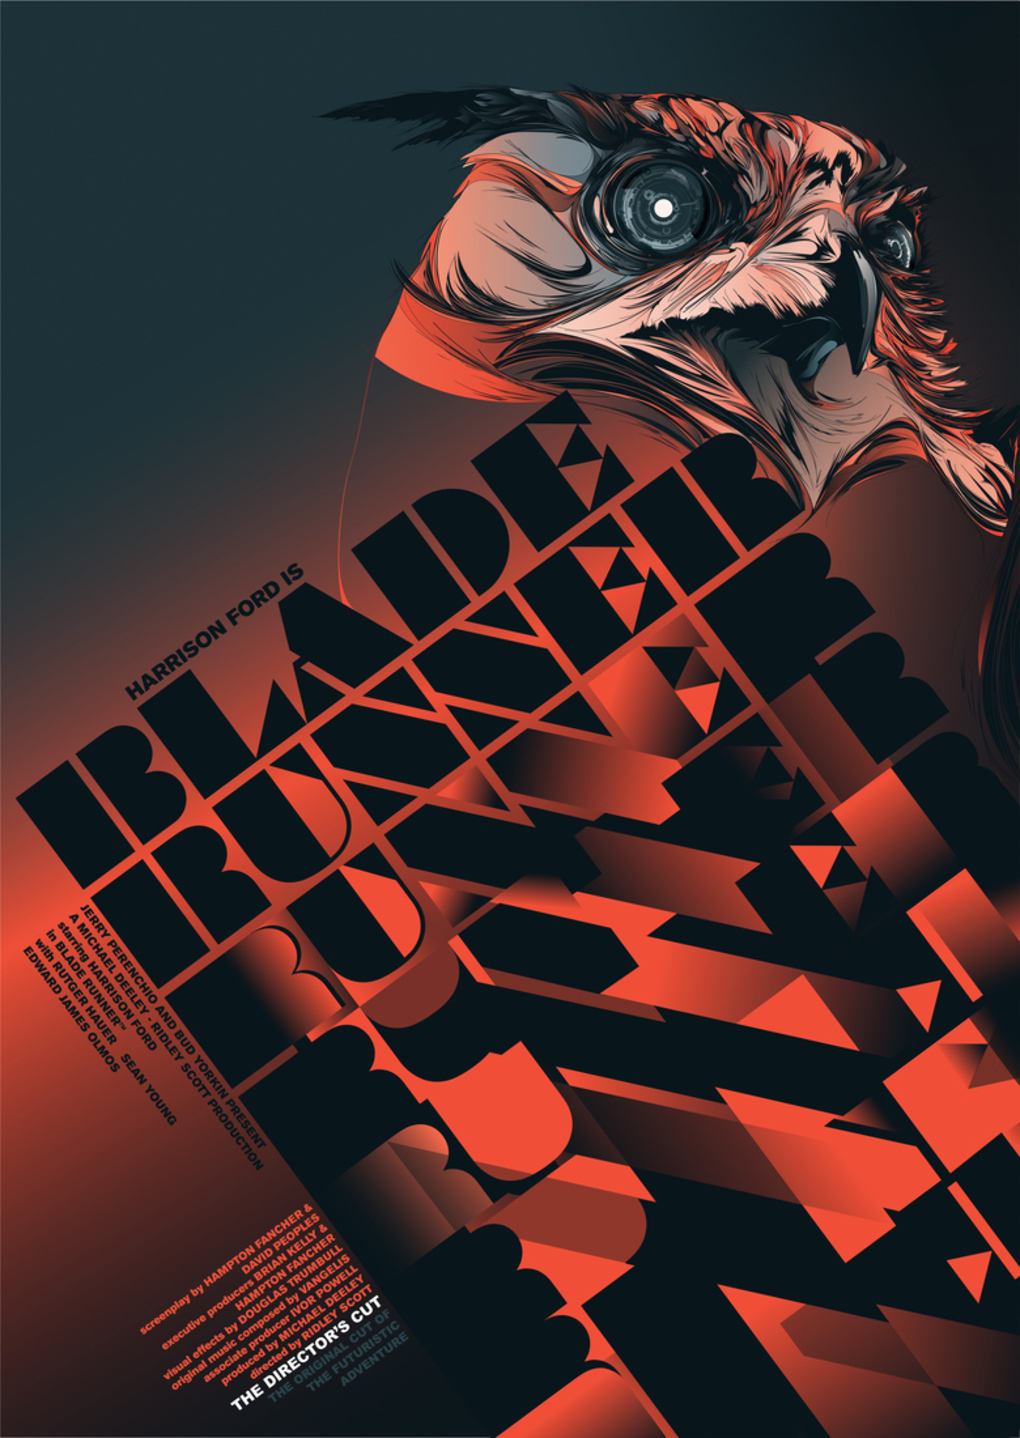 Alternative Movie Posters: Film Art from the Underground: Blade Runner